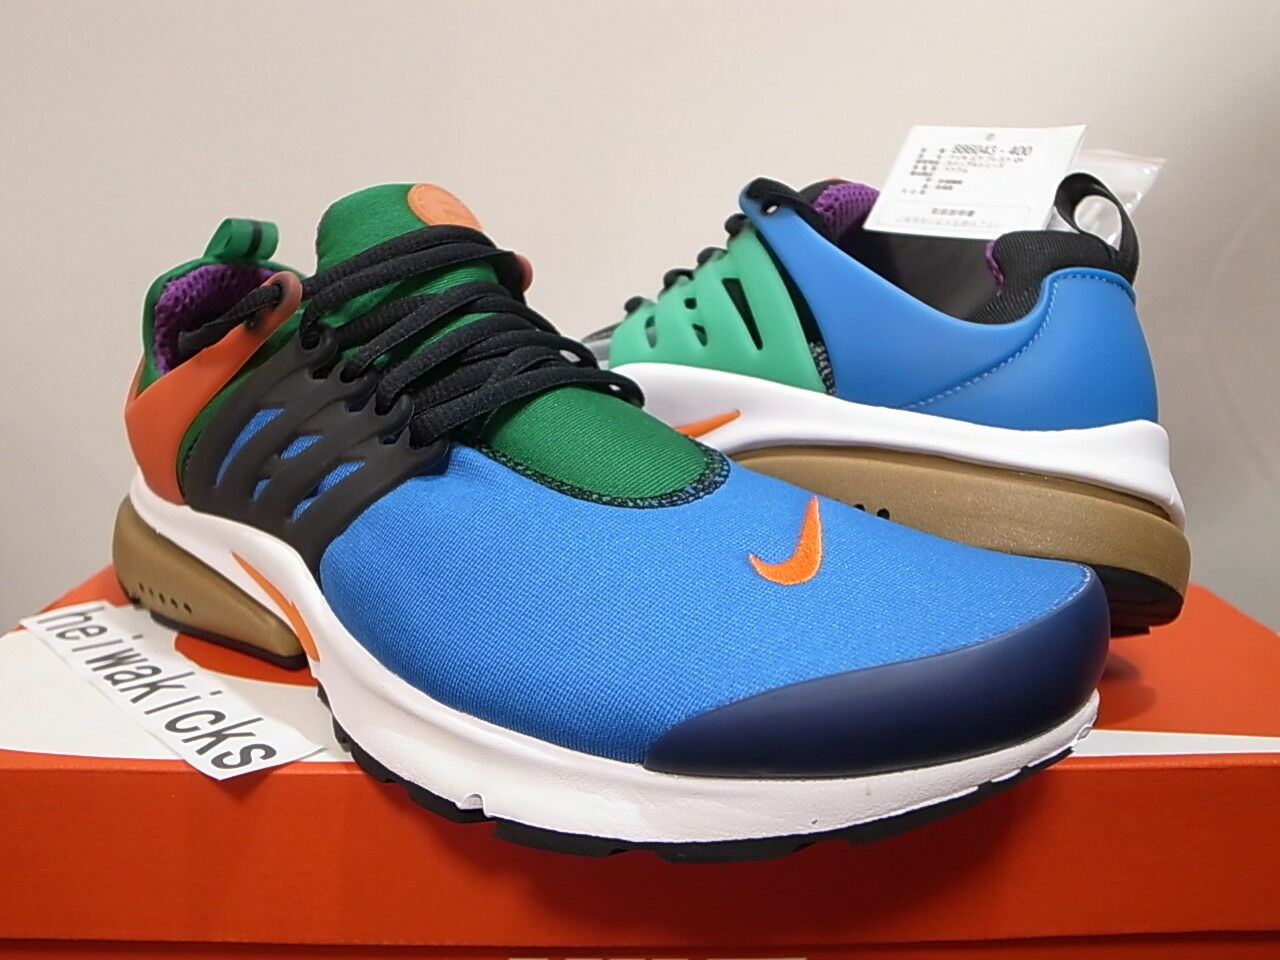 2016 NIKE AIR PRESTO QS GREEDY BEAMS WHAT THE MULTI-COLOR 886043-400 size 10 Casual wild